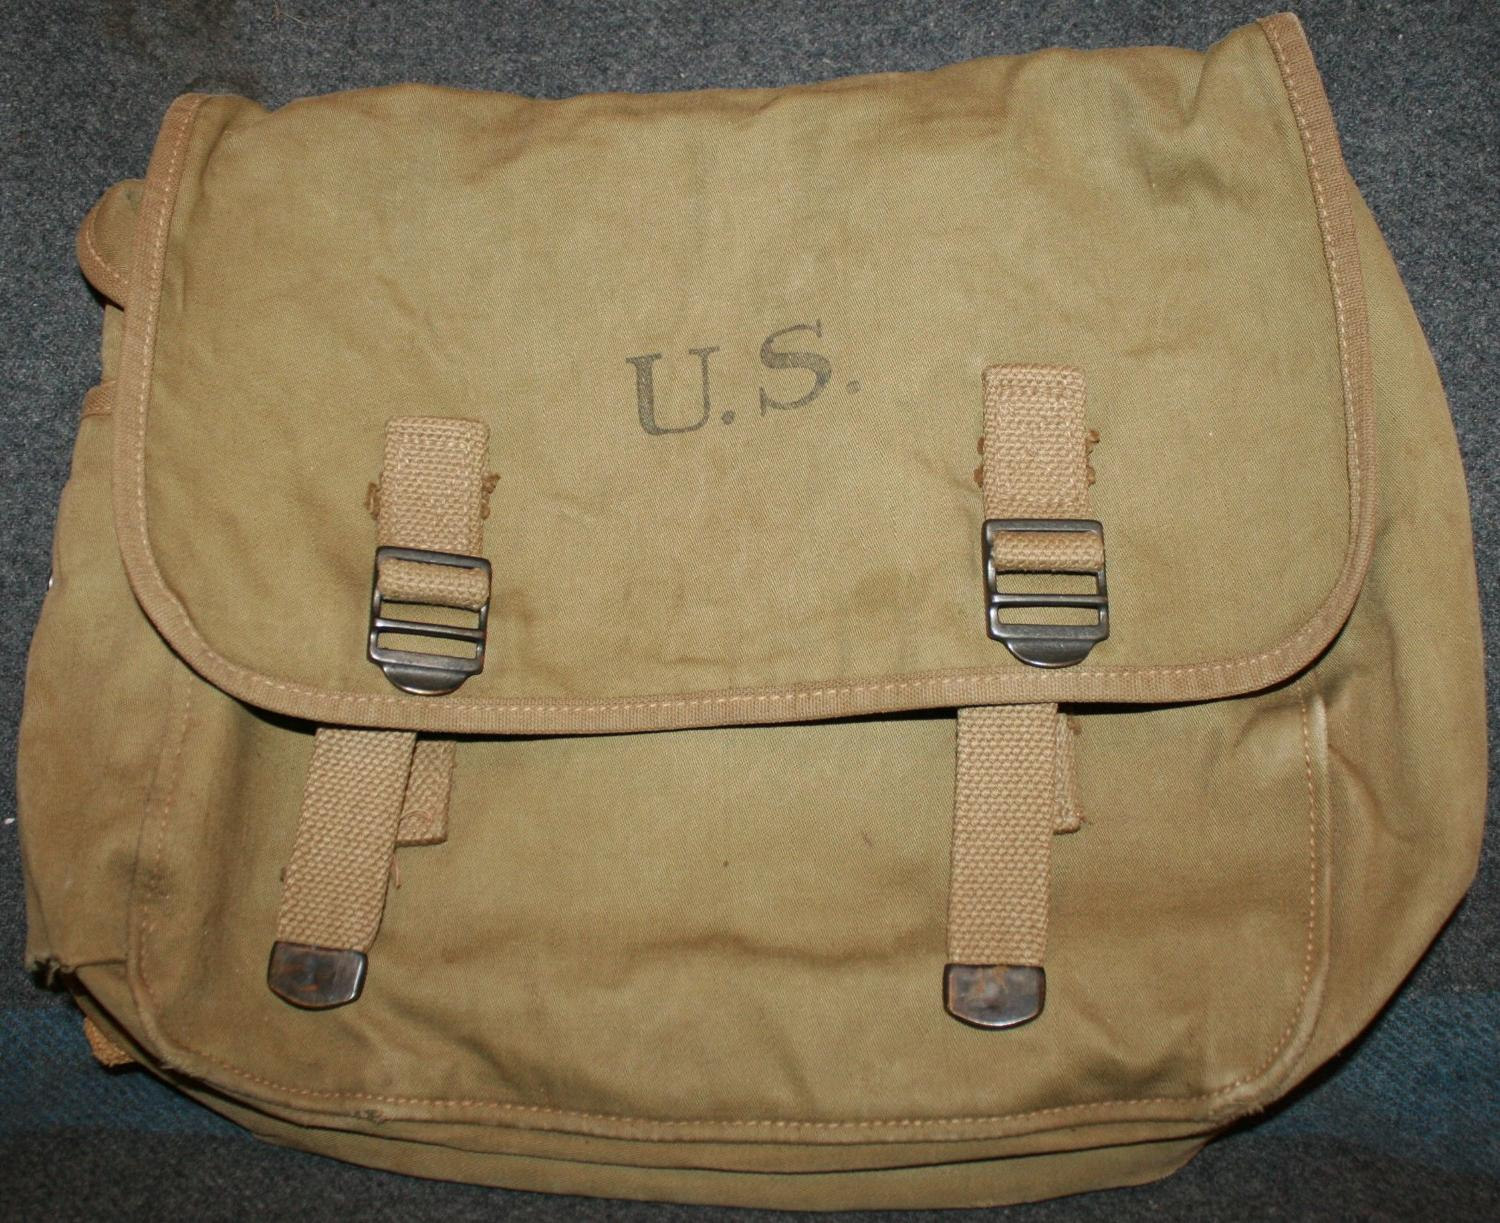 A GOOD USED EARLY WWII 1940 DATED US ARMY MUSSET BAG AND STRAP